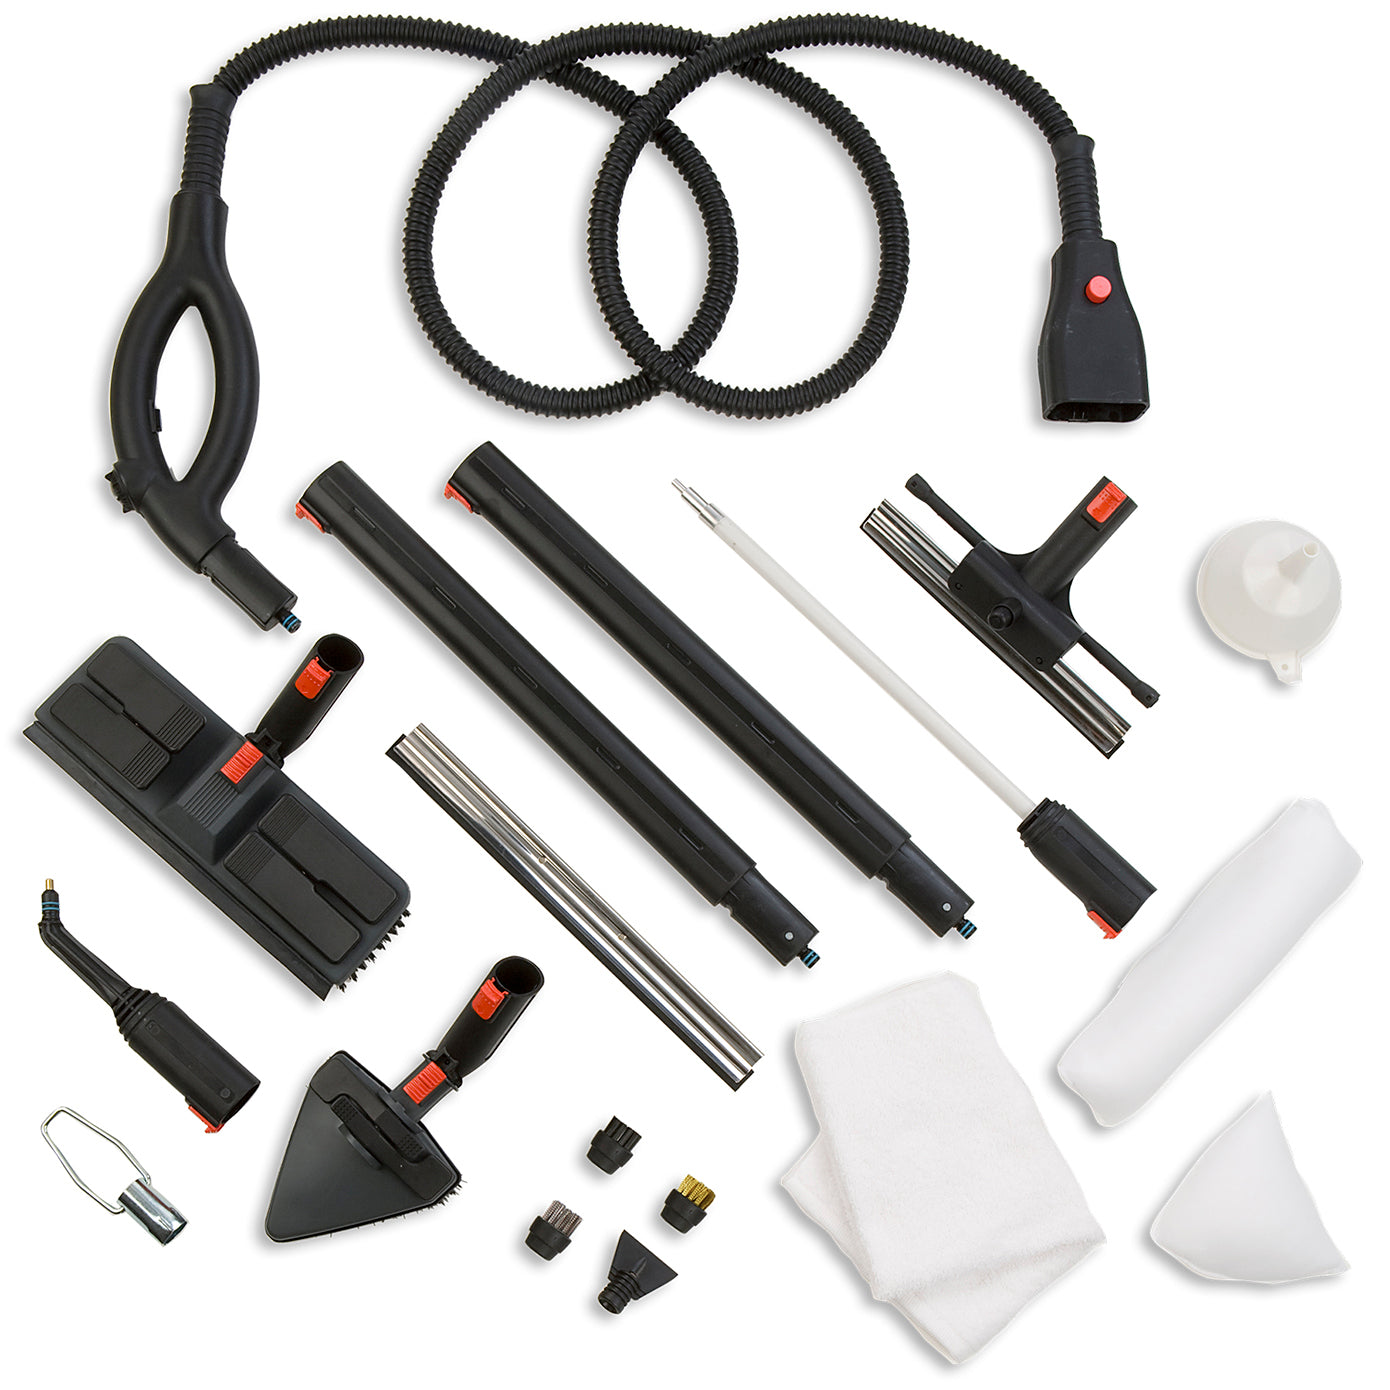 Many accessories available for product